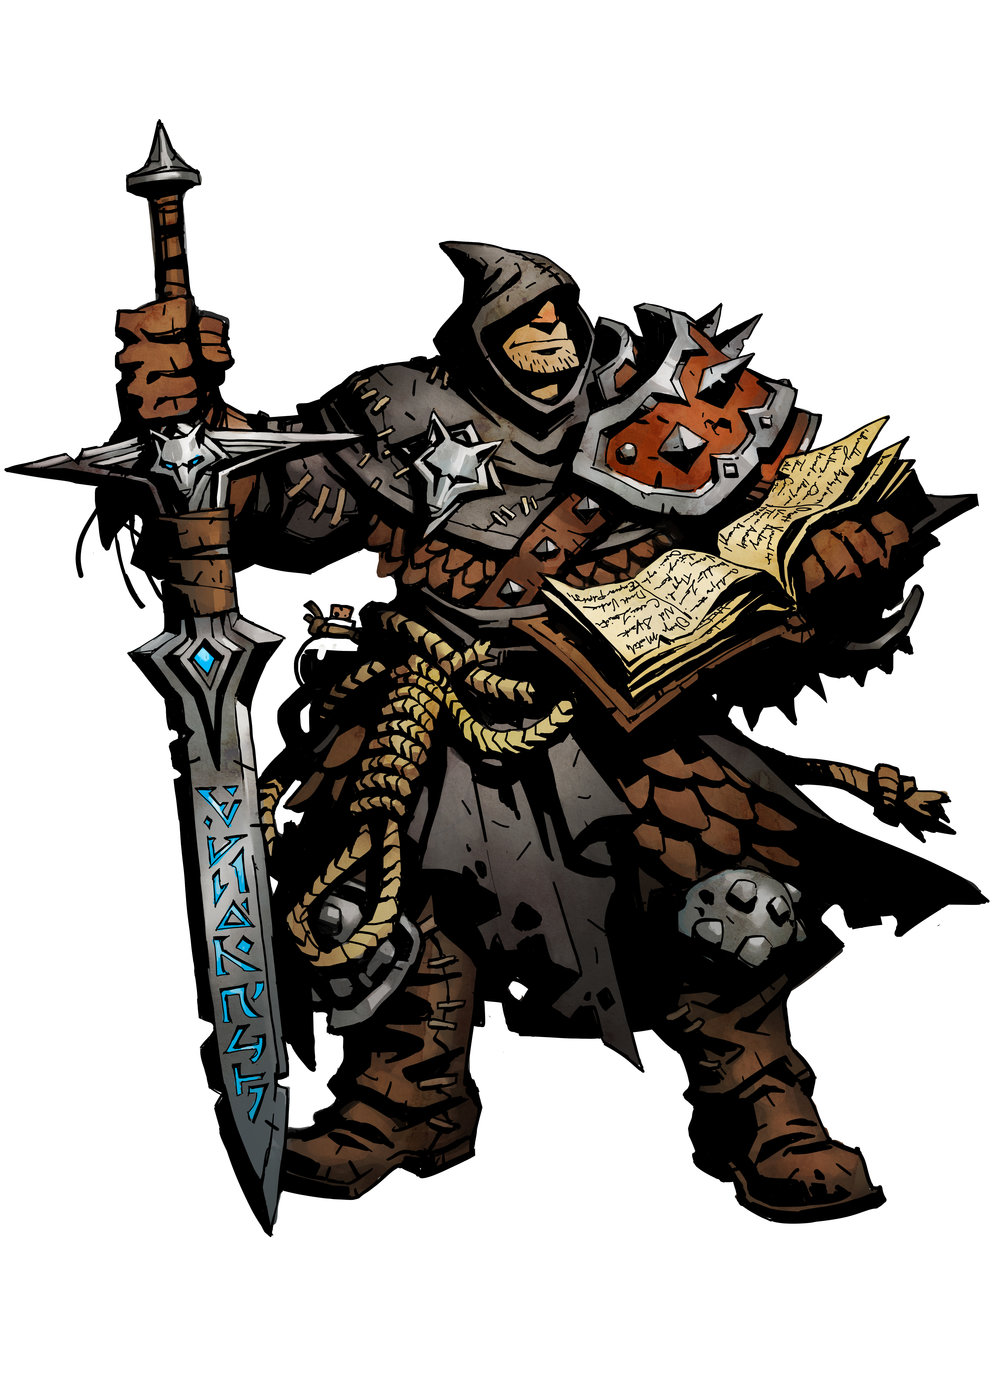 RIGHTEOUS EXECUTIONER FAQ - Q: What happens when I bury someone that is hanged by the Executioner?A: They are broken from the noose and are now buried.